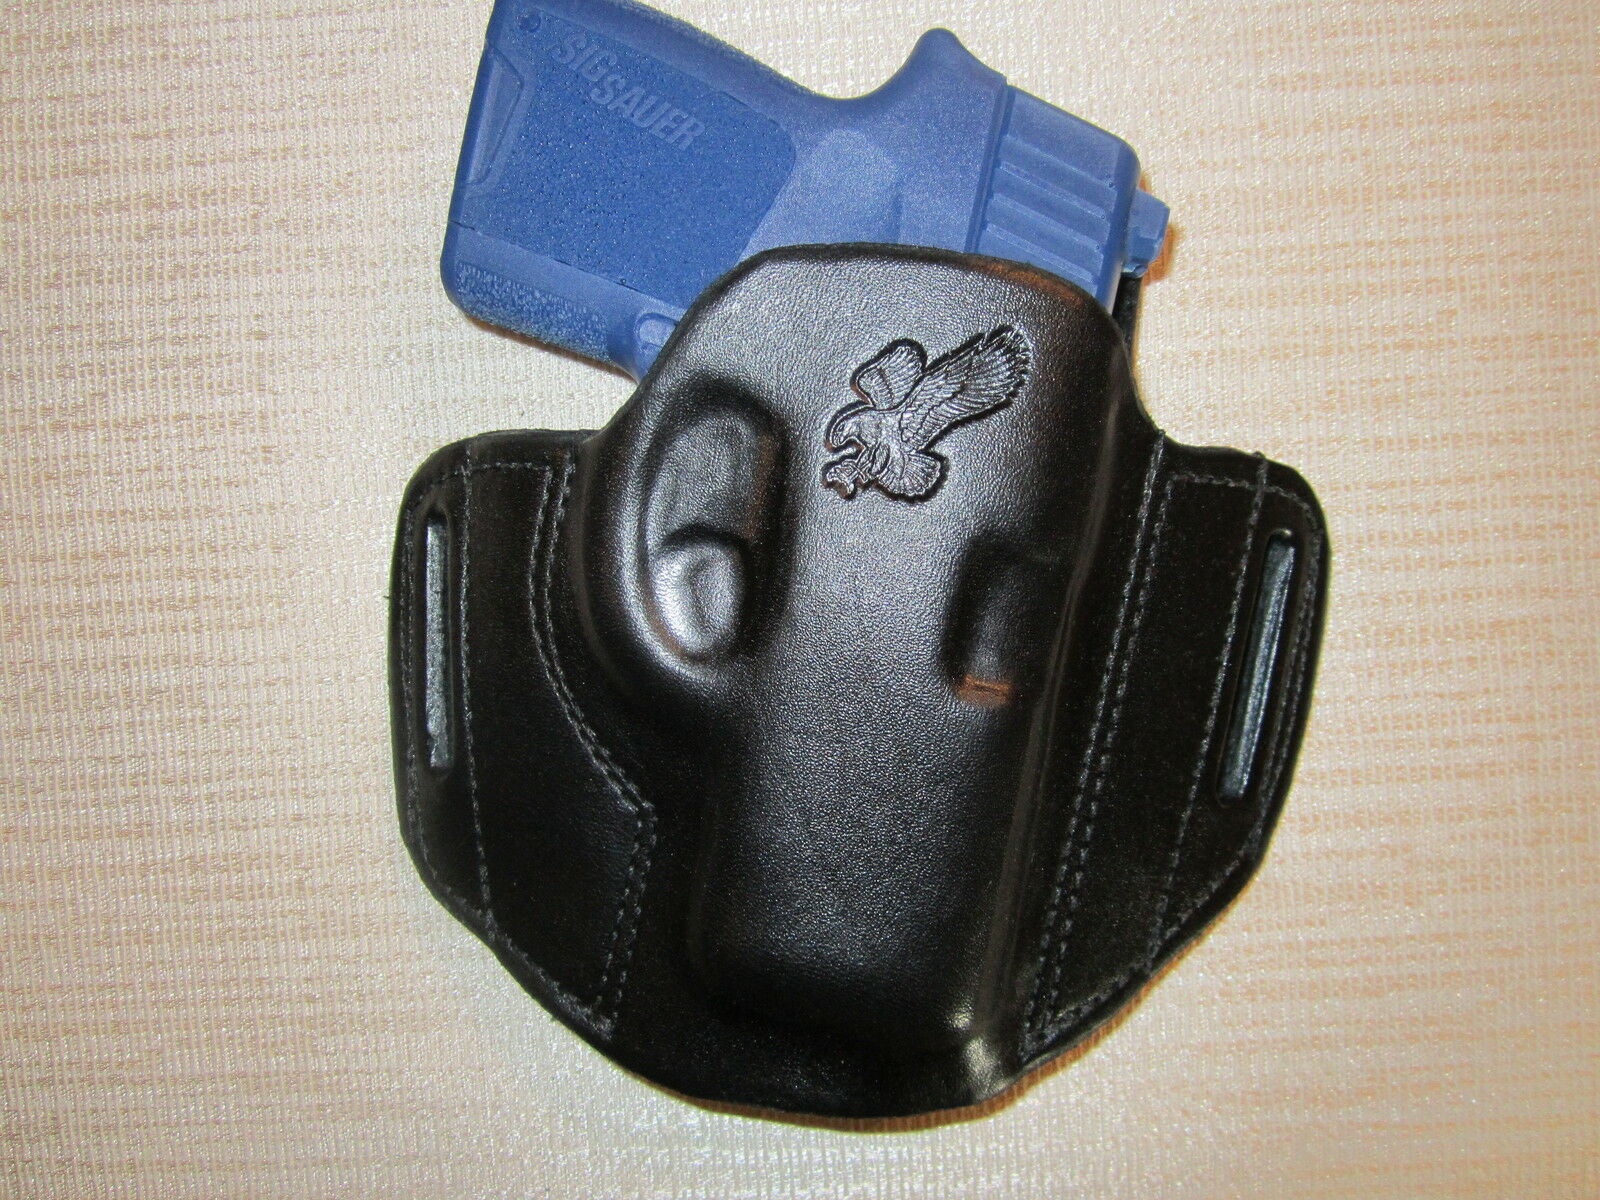 Fits SIG P290 - 9mm, LEATHER PANCAKE HOLSTER, OWB BELT HOLSTER, RIGHT HAND